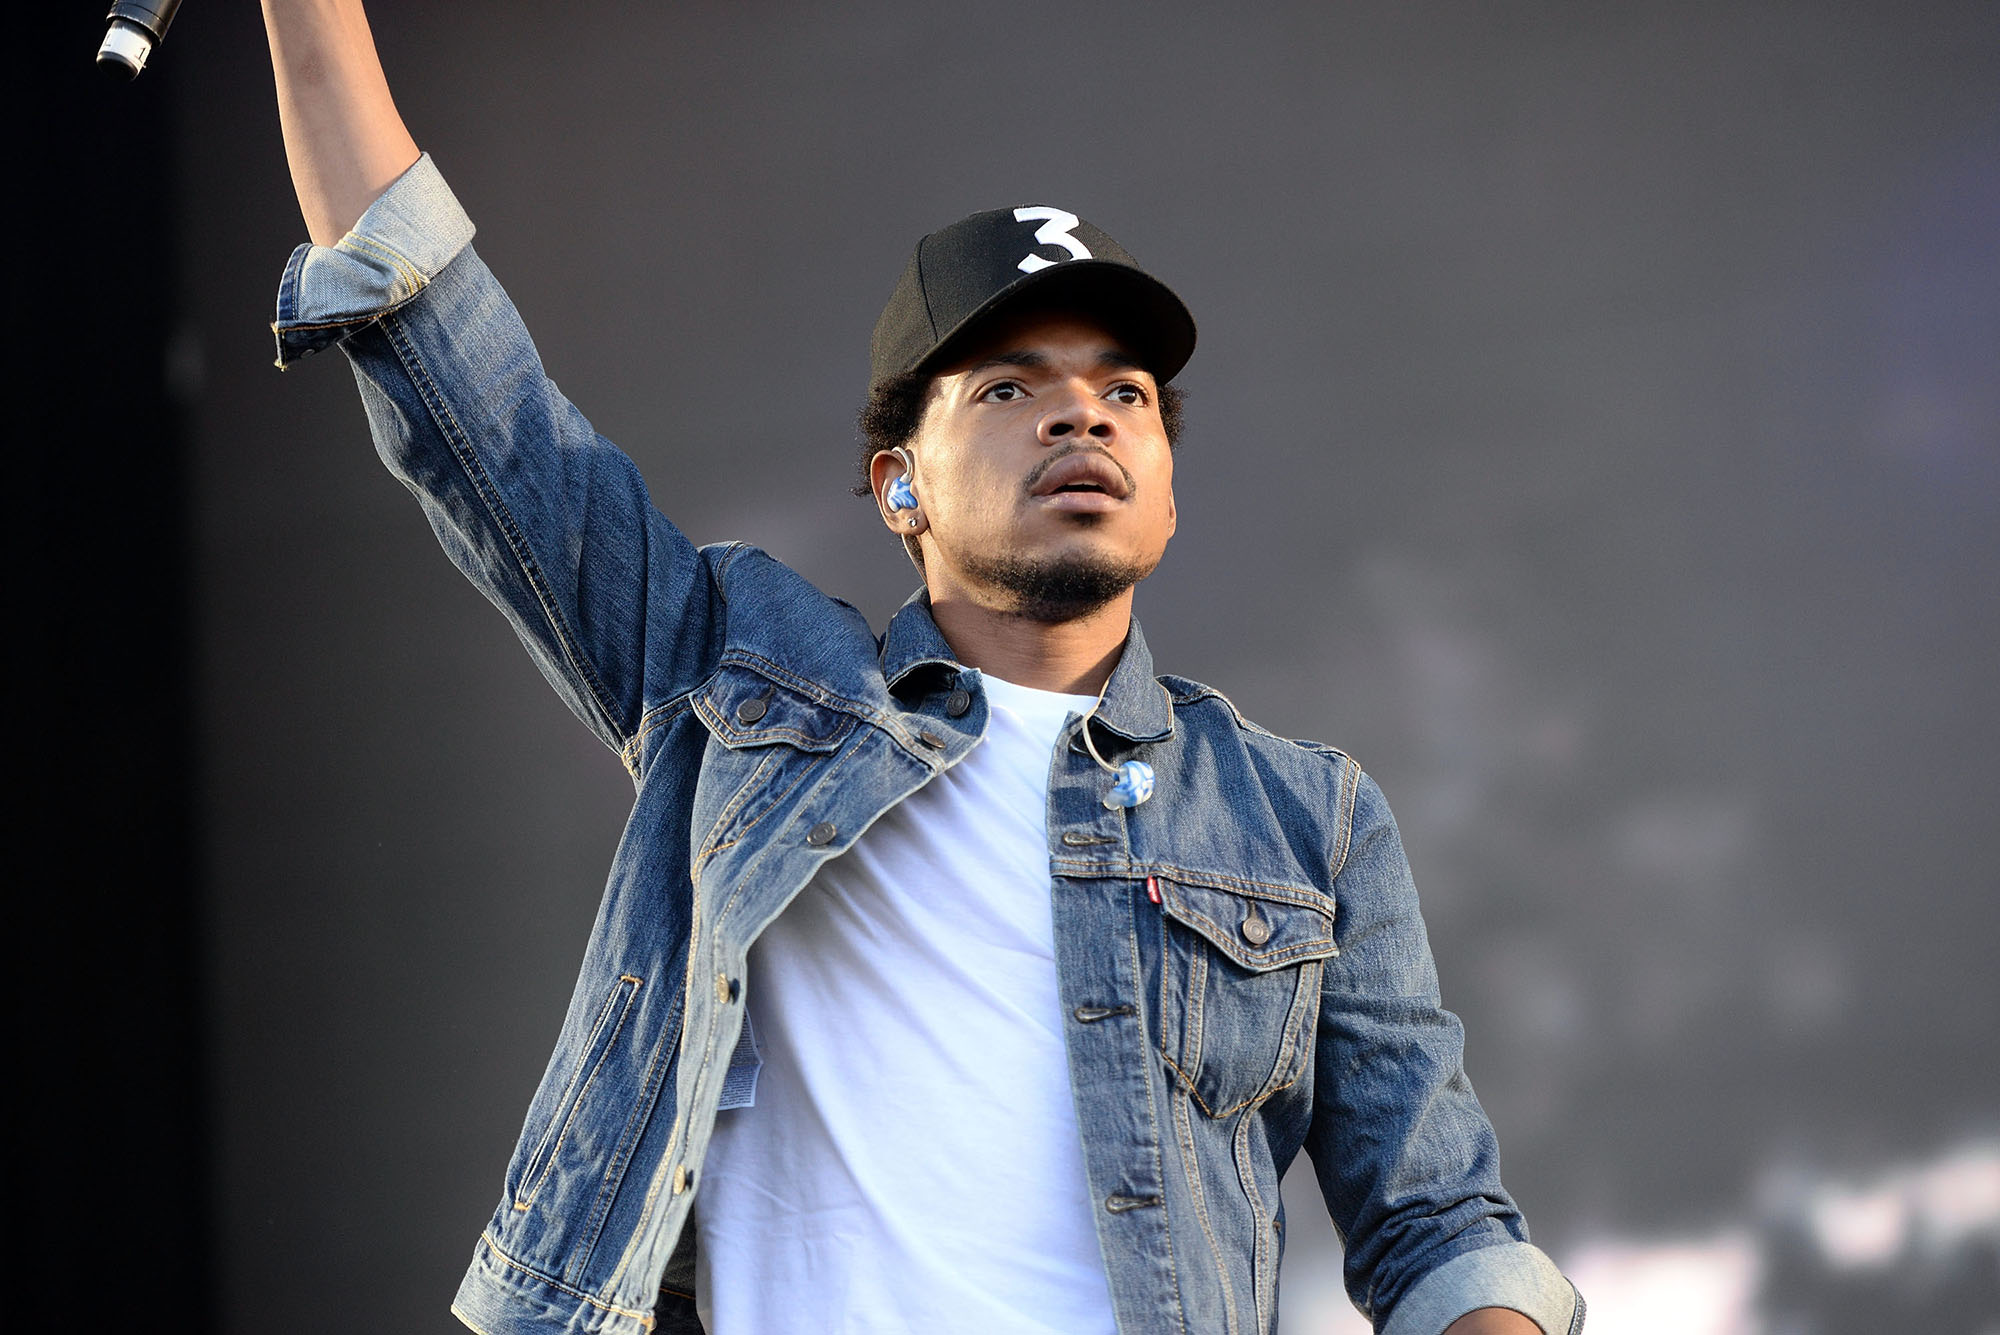 Chance the Rapper performs onstage during Outside Lands at Golden Gate Park on August 7, 2016 in San Francisco, California.  (Photo by Scott Dudelson/Getty Images)